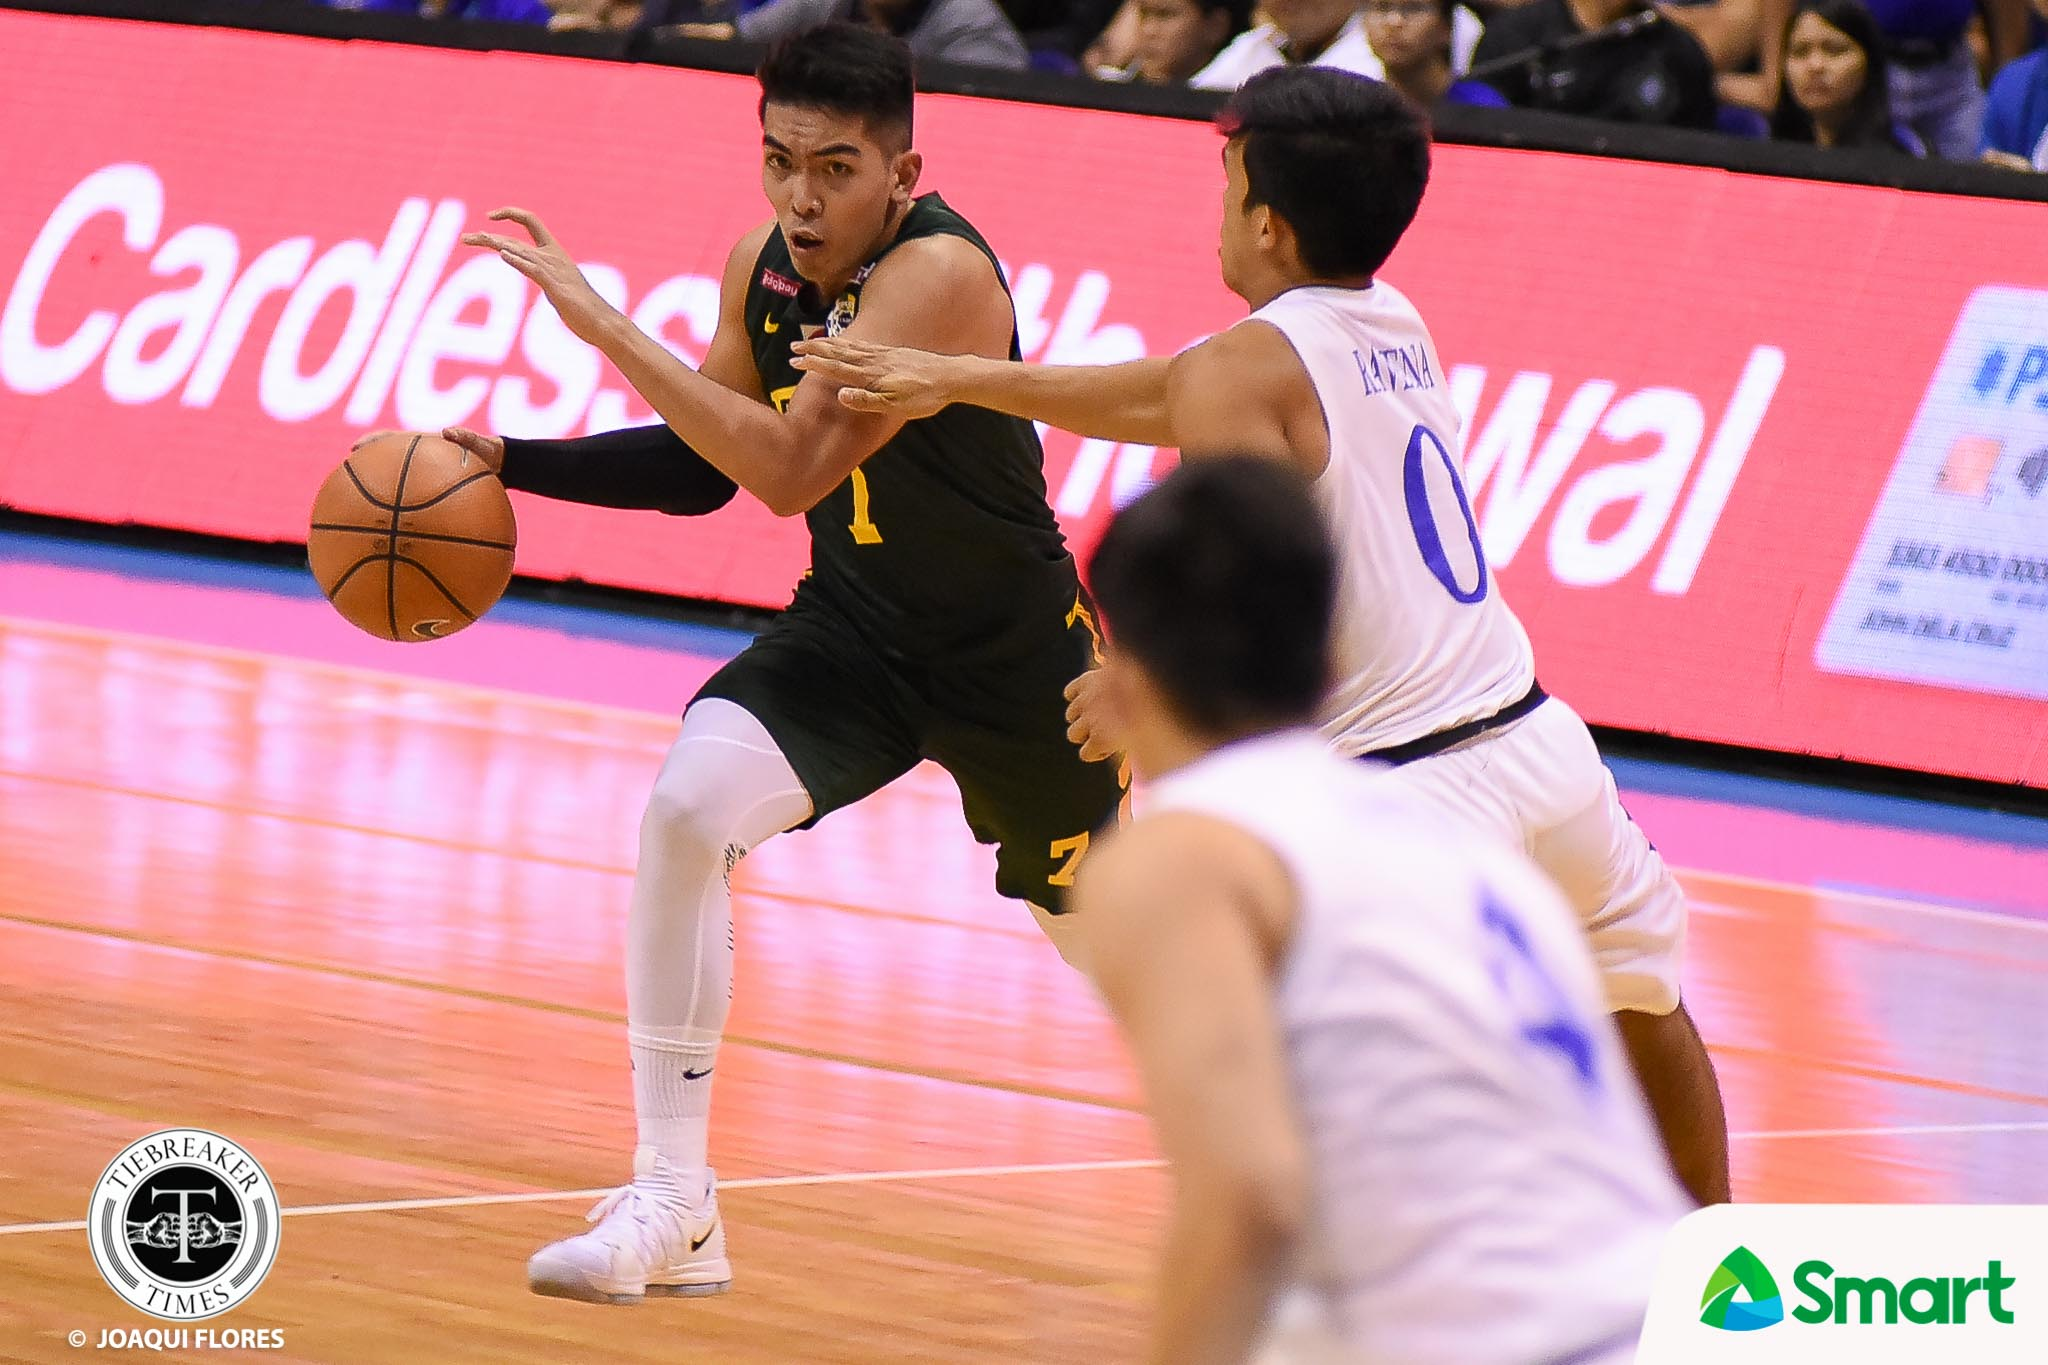 Philippine Sports News - Tiebreaker Times FEU outworks Ateneo to force win-or-go-home tilt ADMU Basketball FEU News UAAP  UAAP Season 80 Men's Basketball UAAP Season 80 Thirdy Ravena Tab Baldwin Ron Dennison Olsen Racela Mike Nieto FEU Men's Basketball Ateneo Men's Basketball Arvin Tolentino